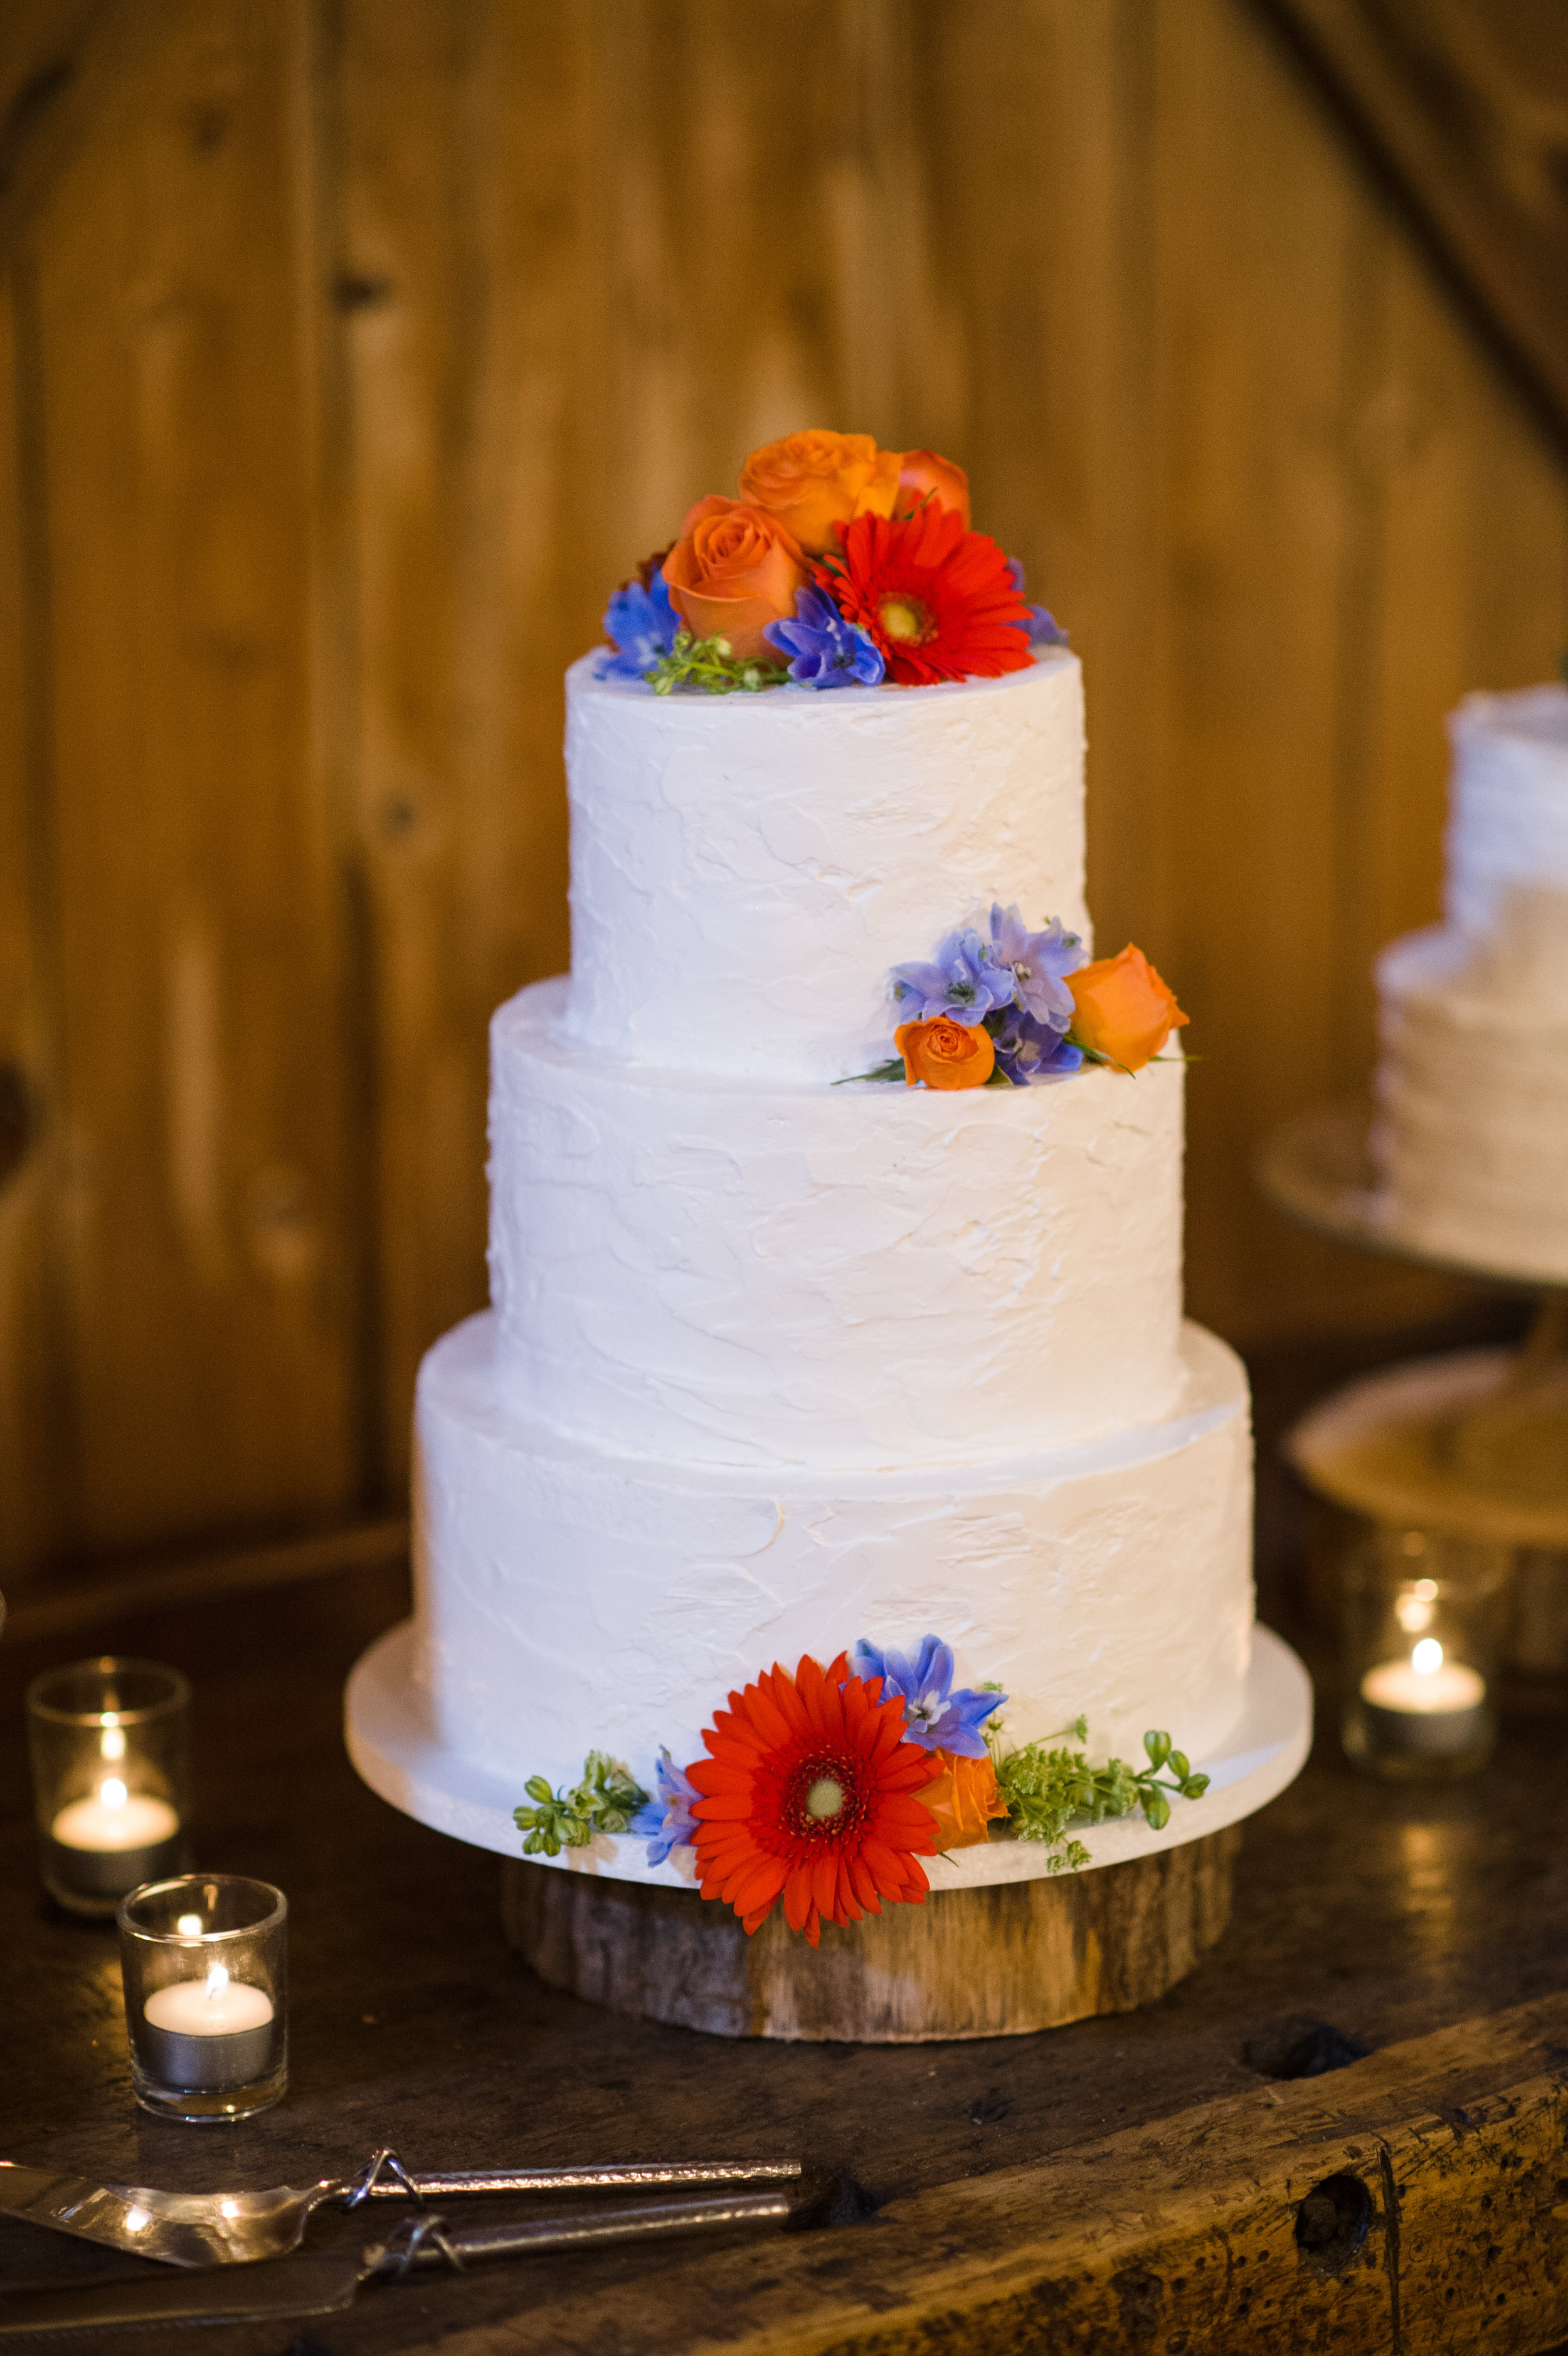 Cake with Flowers (Photo Credit: Michael Will Photography)